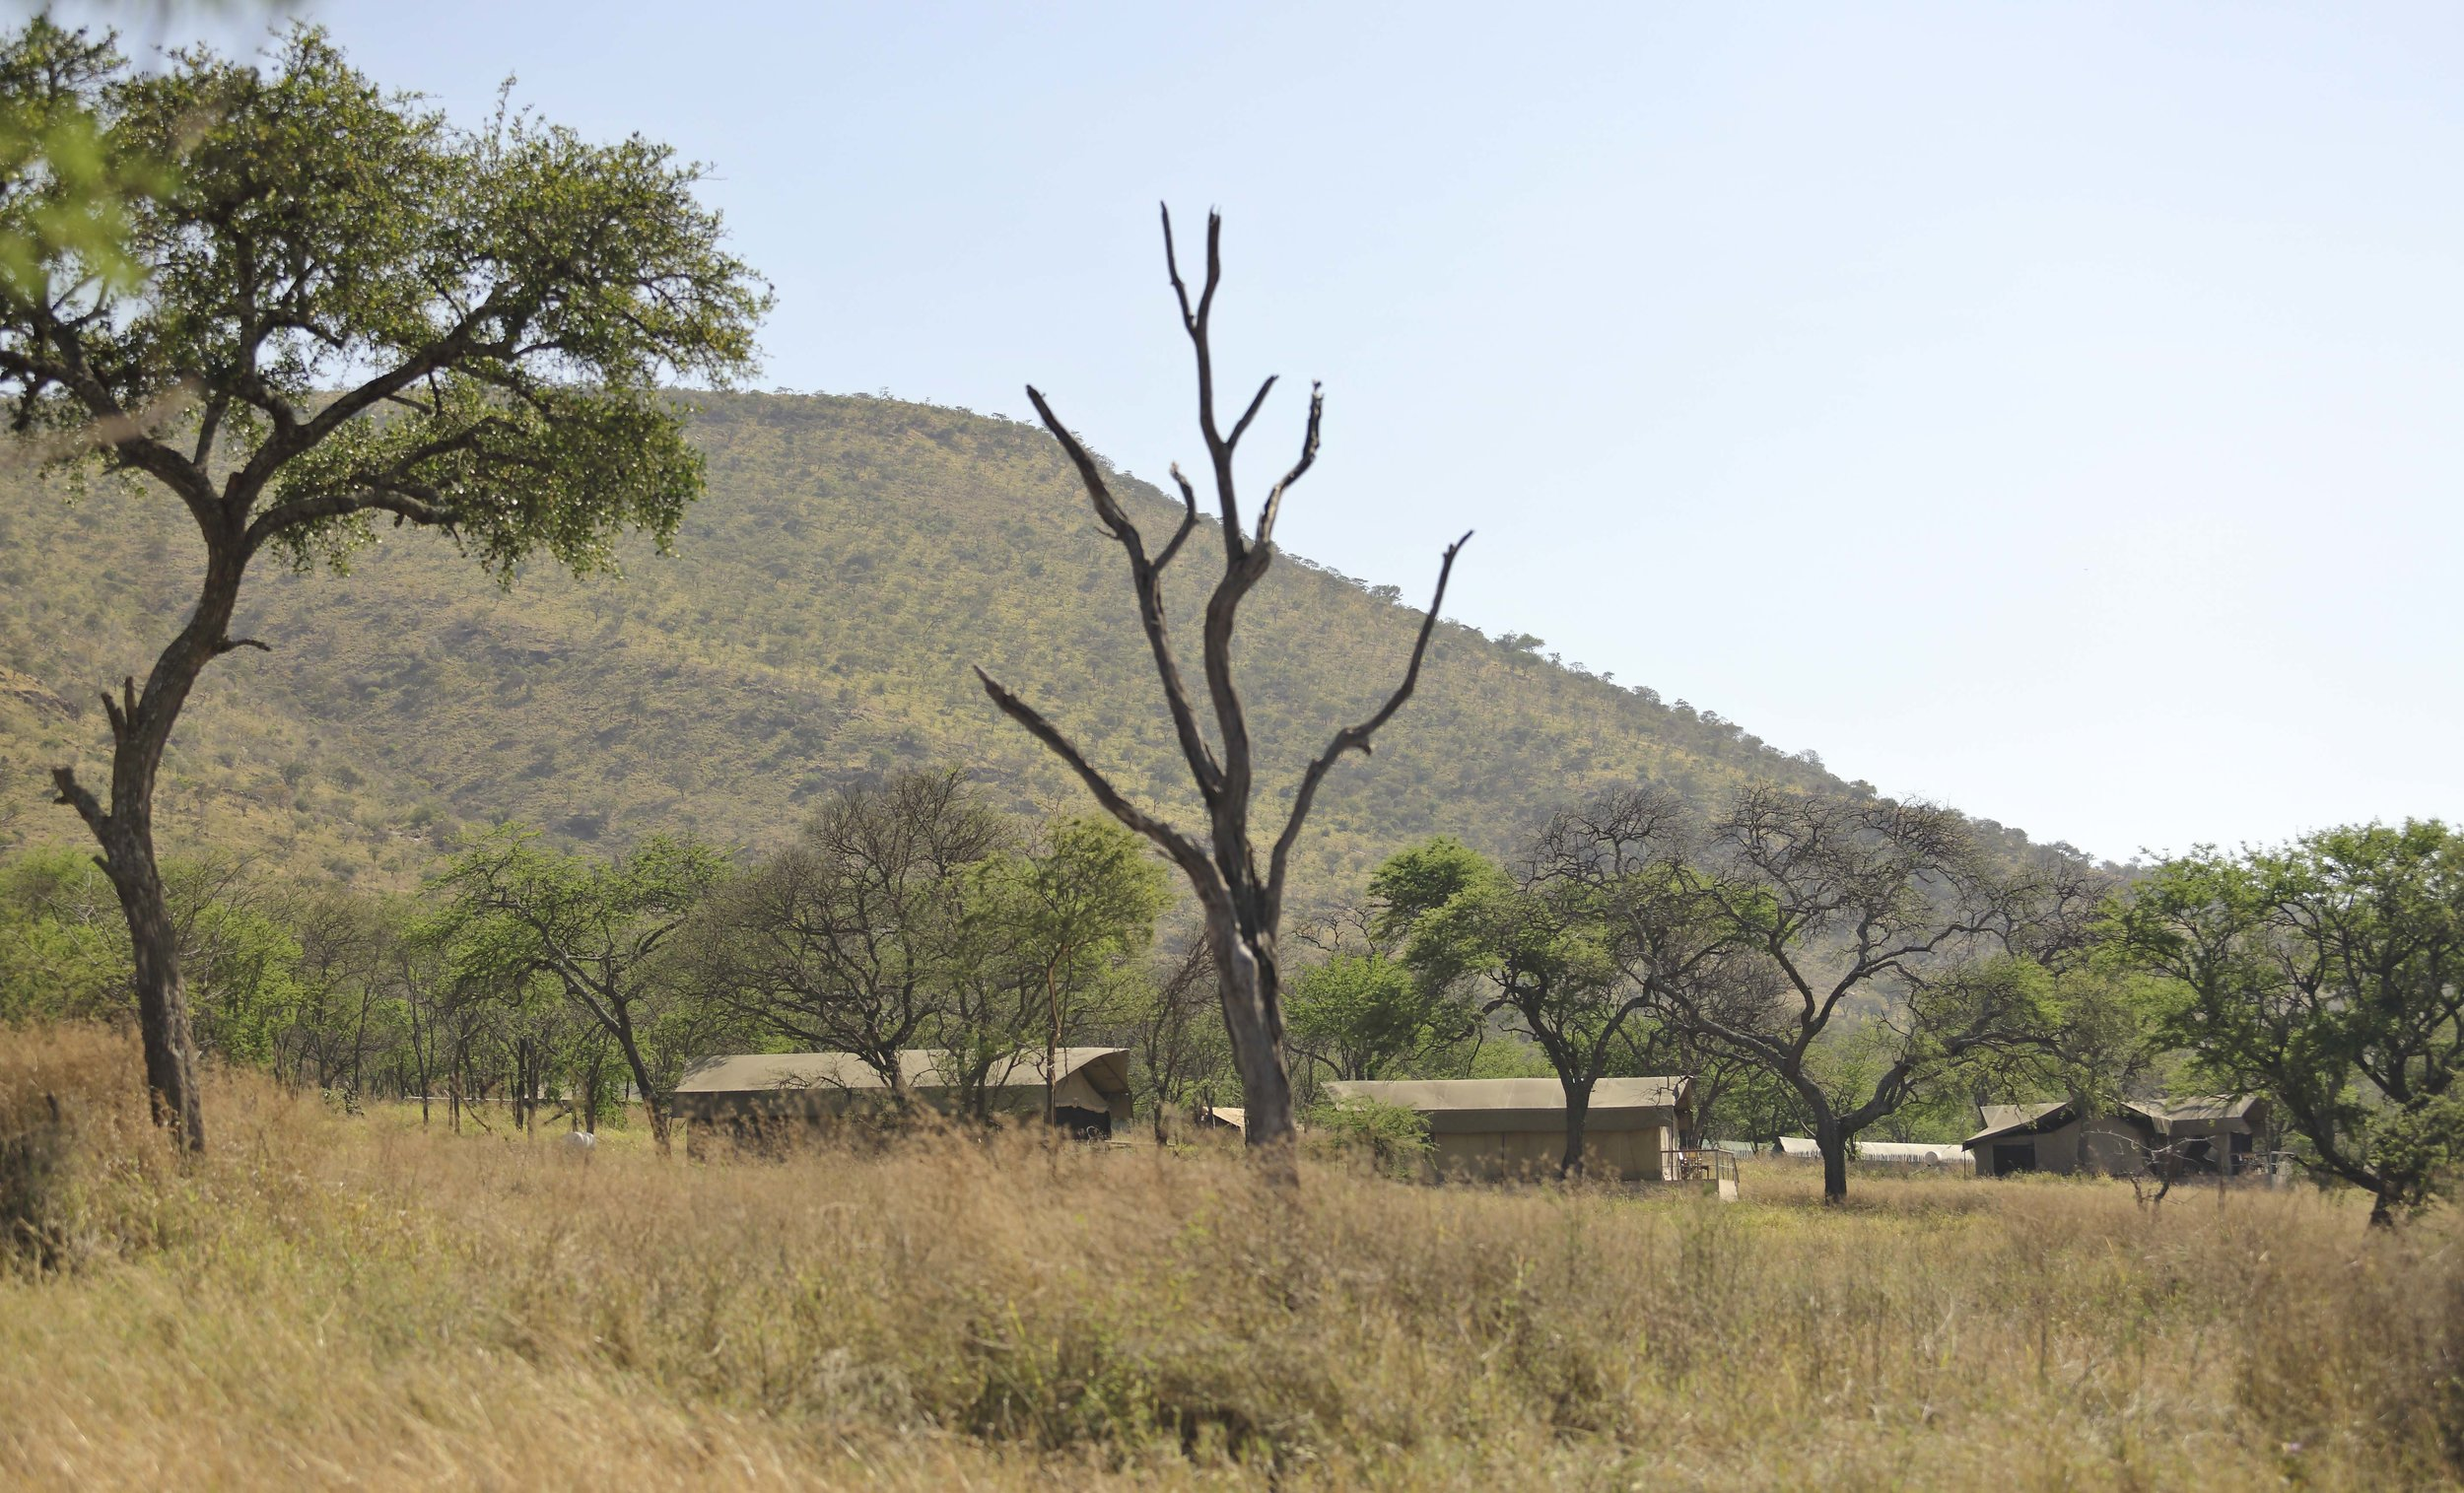 Dunia-Camp-in-central-Serengeti.jpg